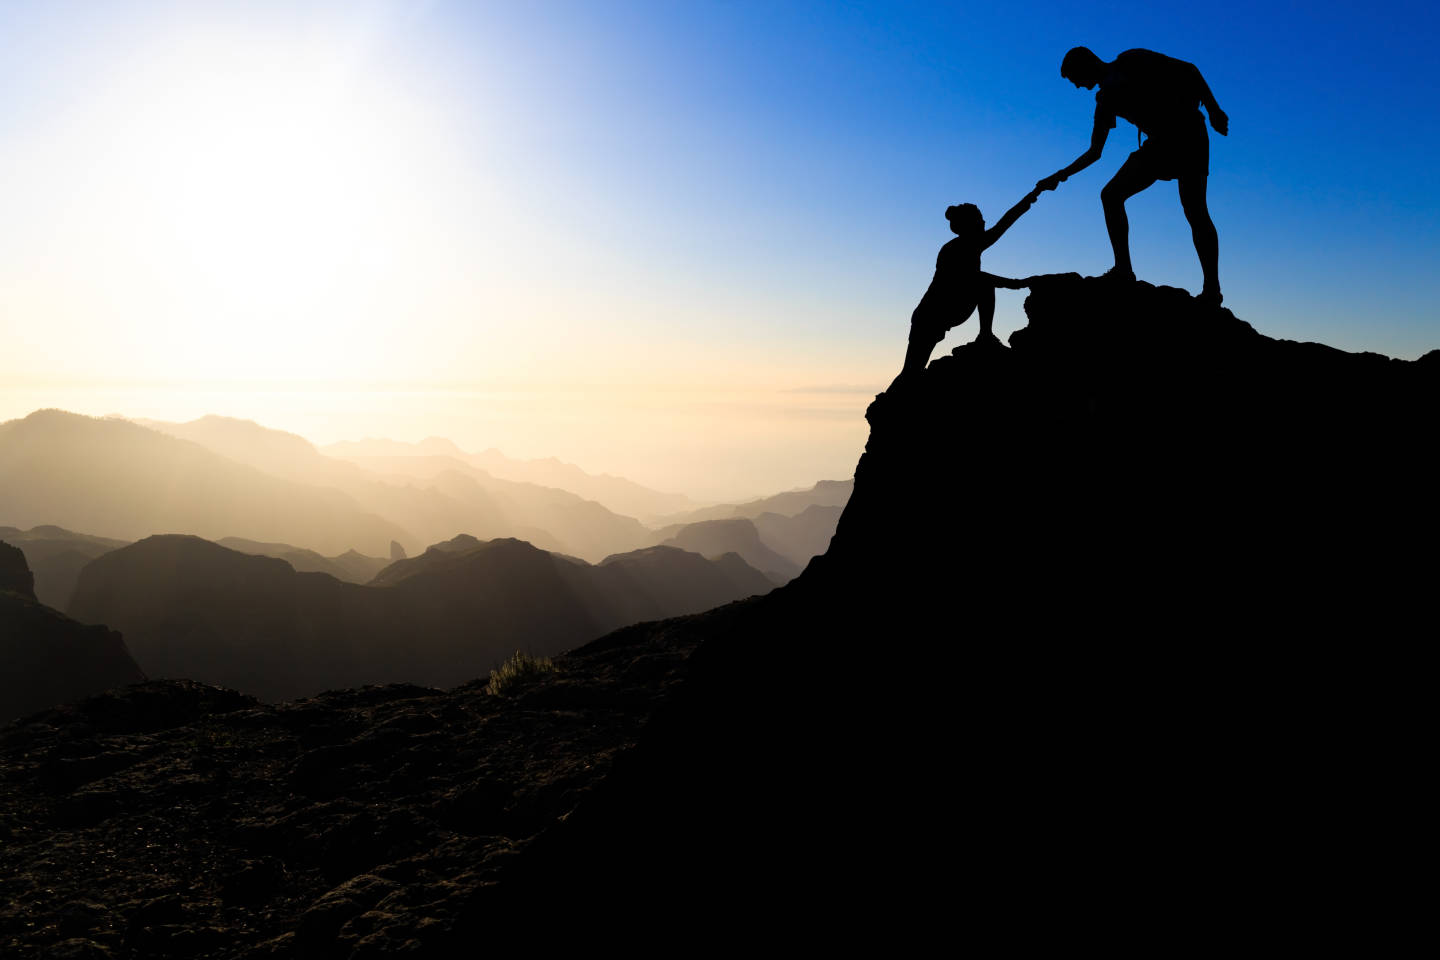 man helping woman up a mountain